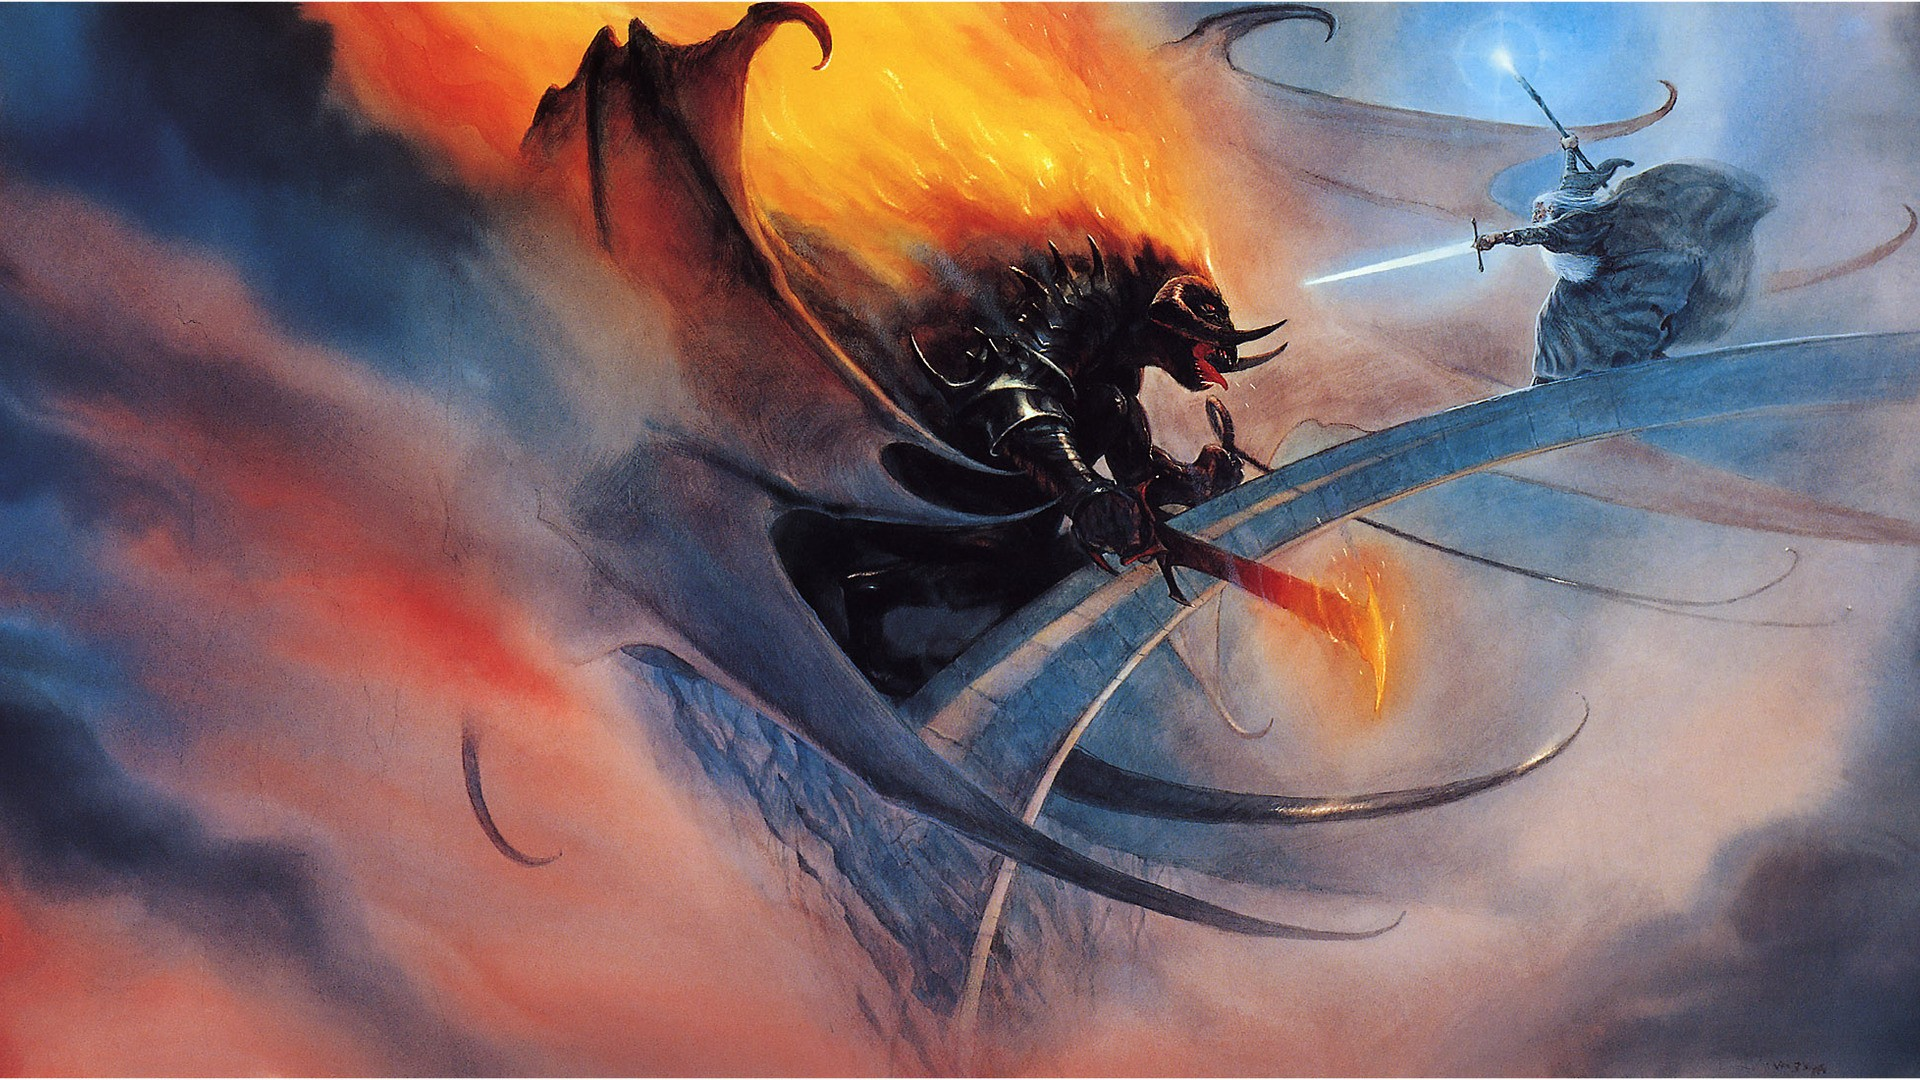 Battle of Gandalf and the Balrog, widescreen wallpaper on the product Tolkien